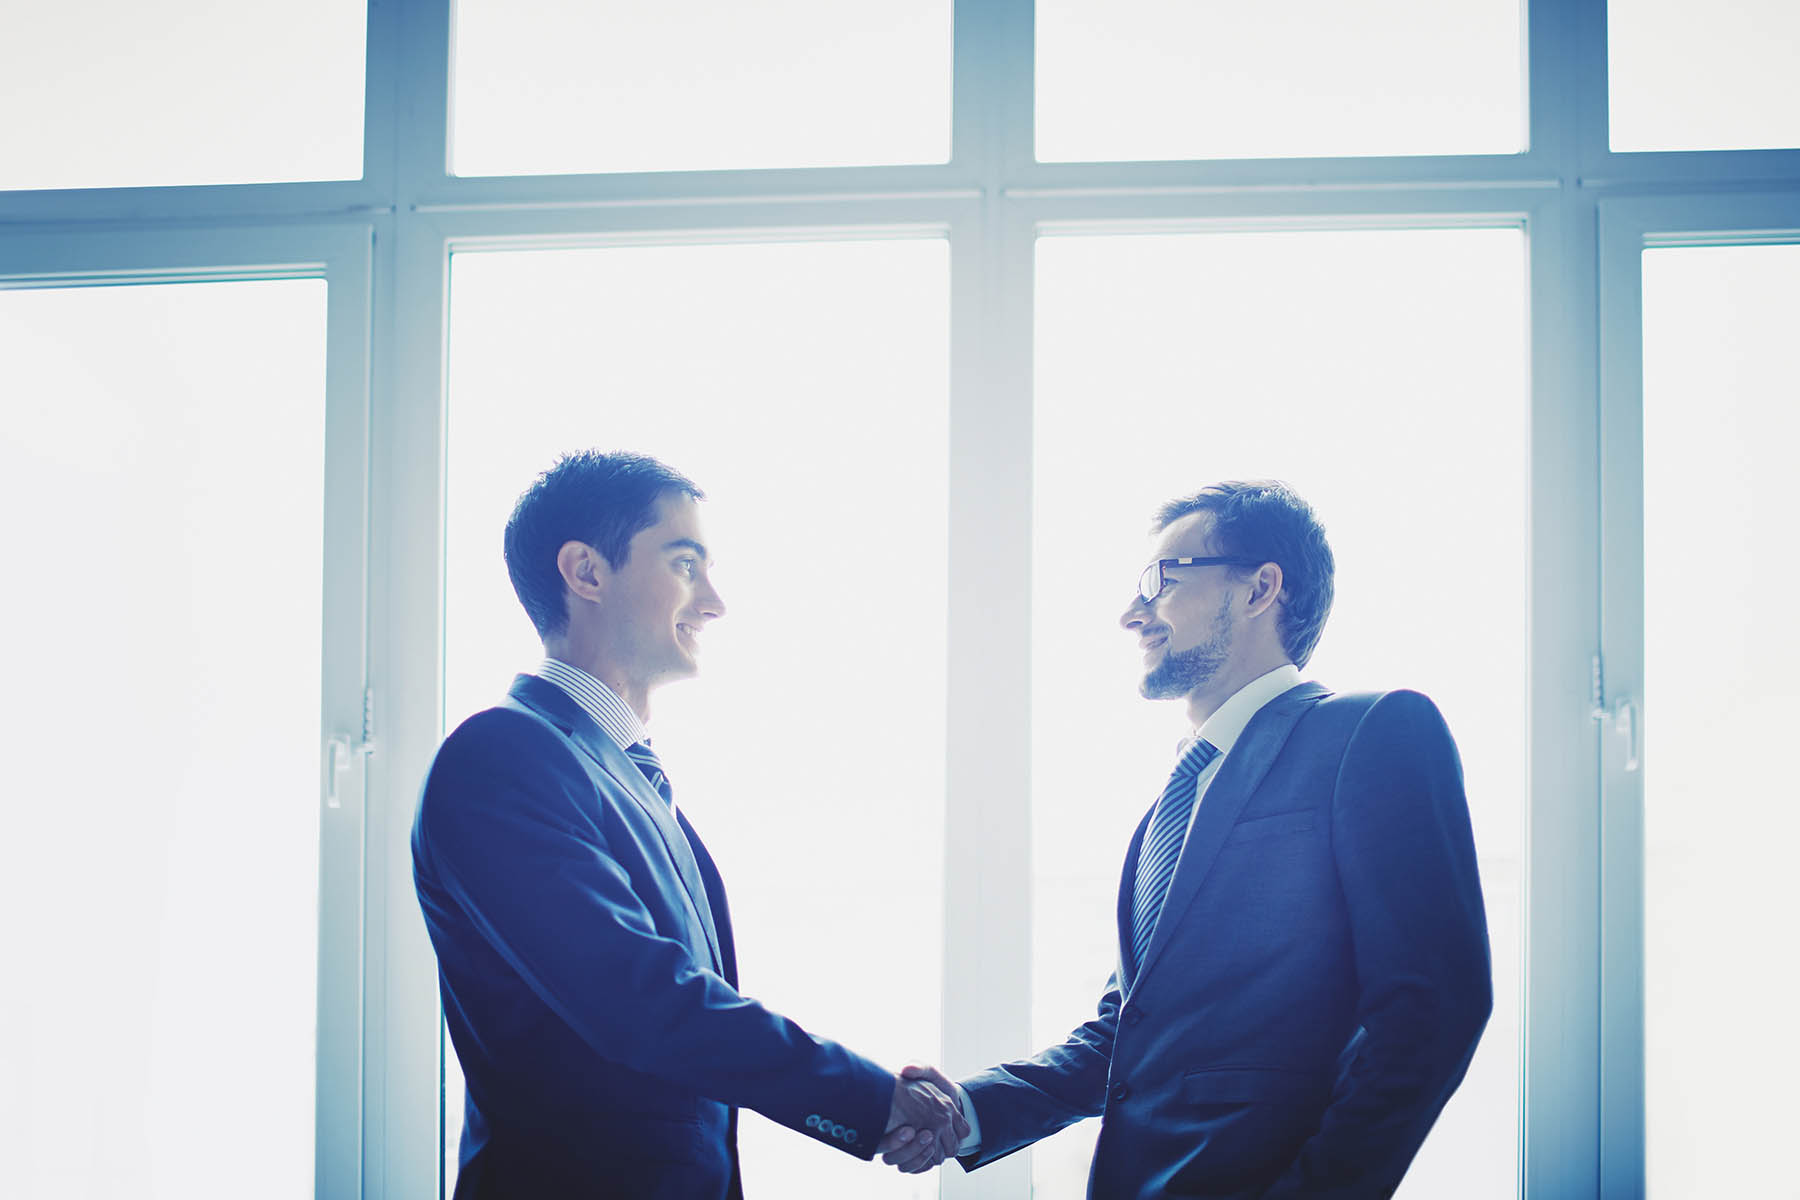 two business men shaking hands in front of the window